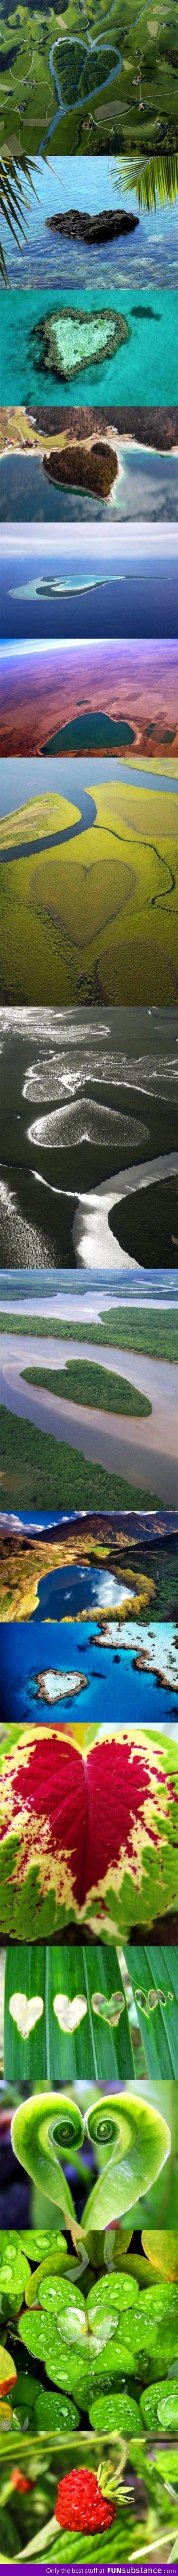 Heart shapes in nature - FunSubstance.com